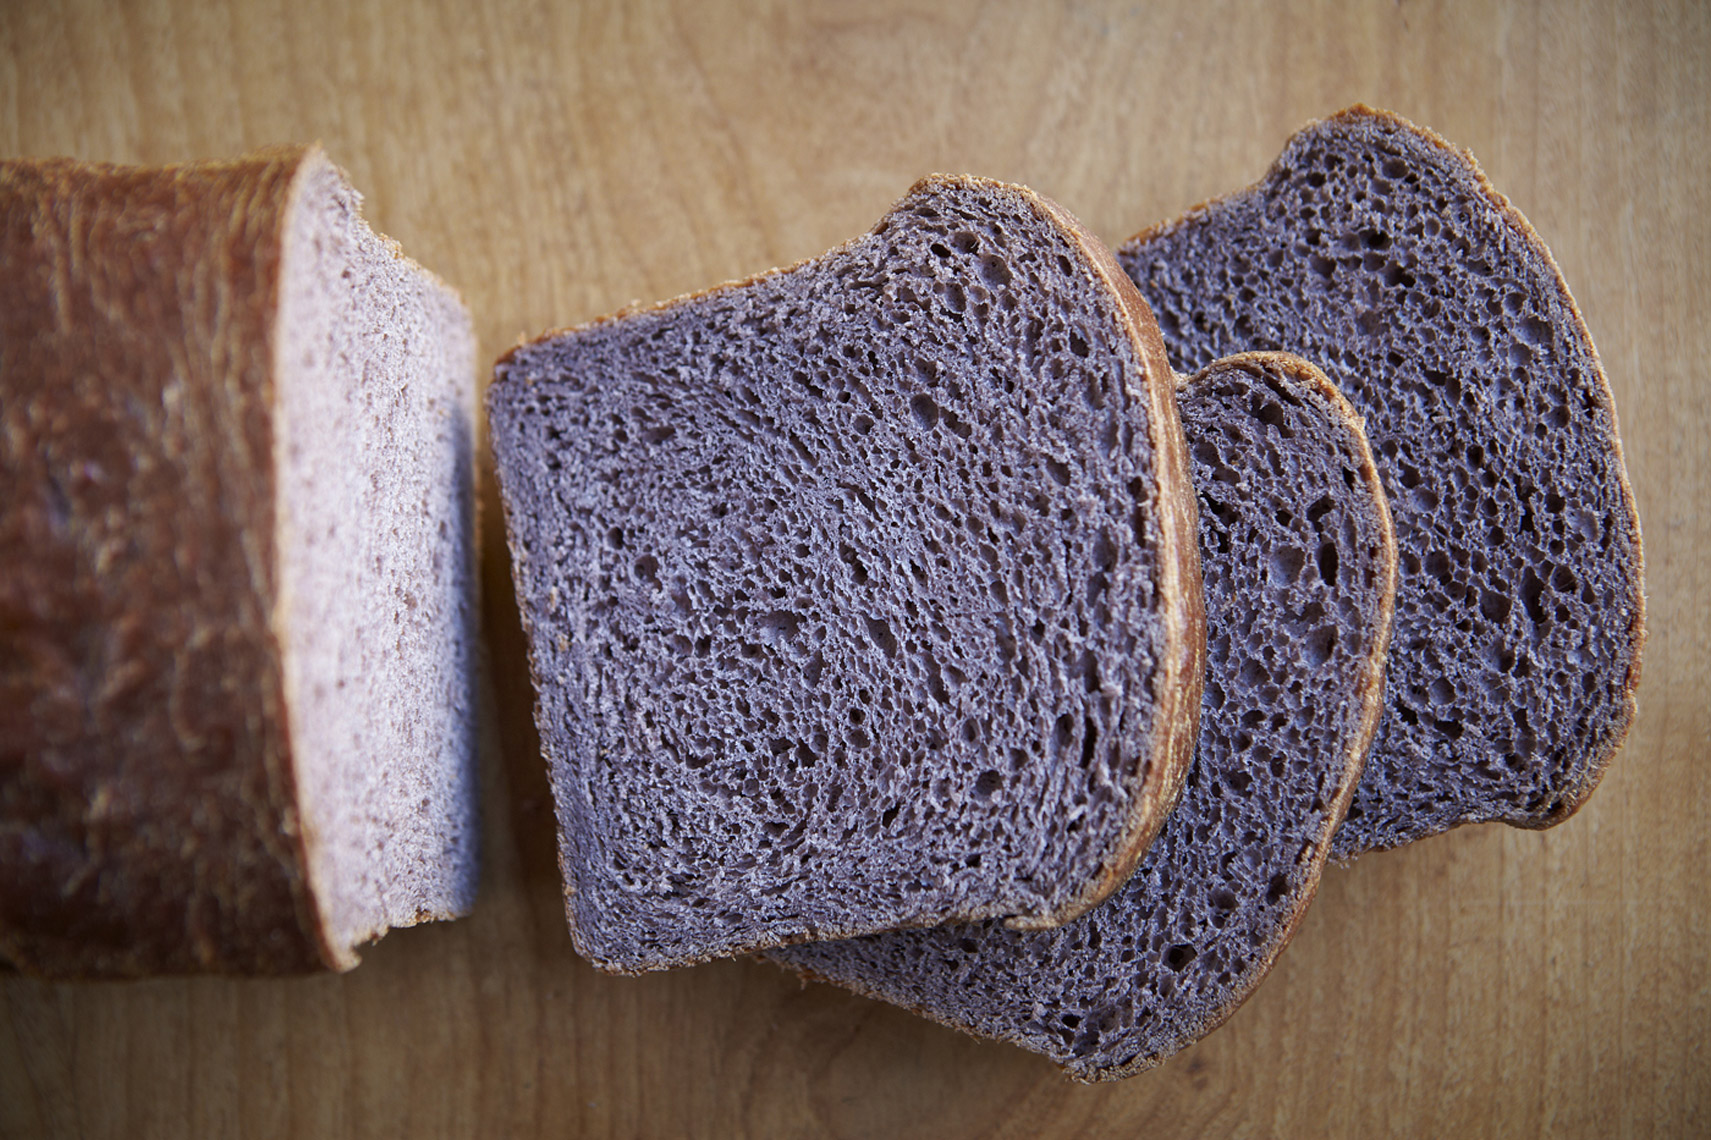 AlanCampbellPhotography, Purple Bread